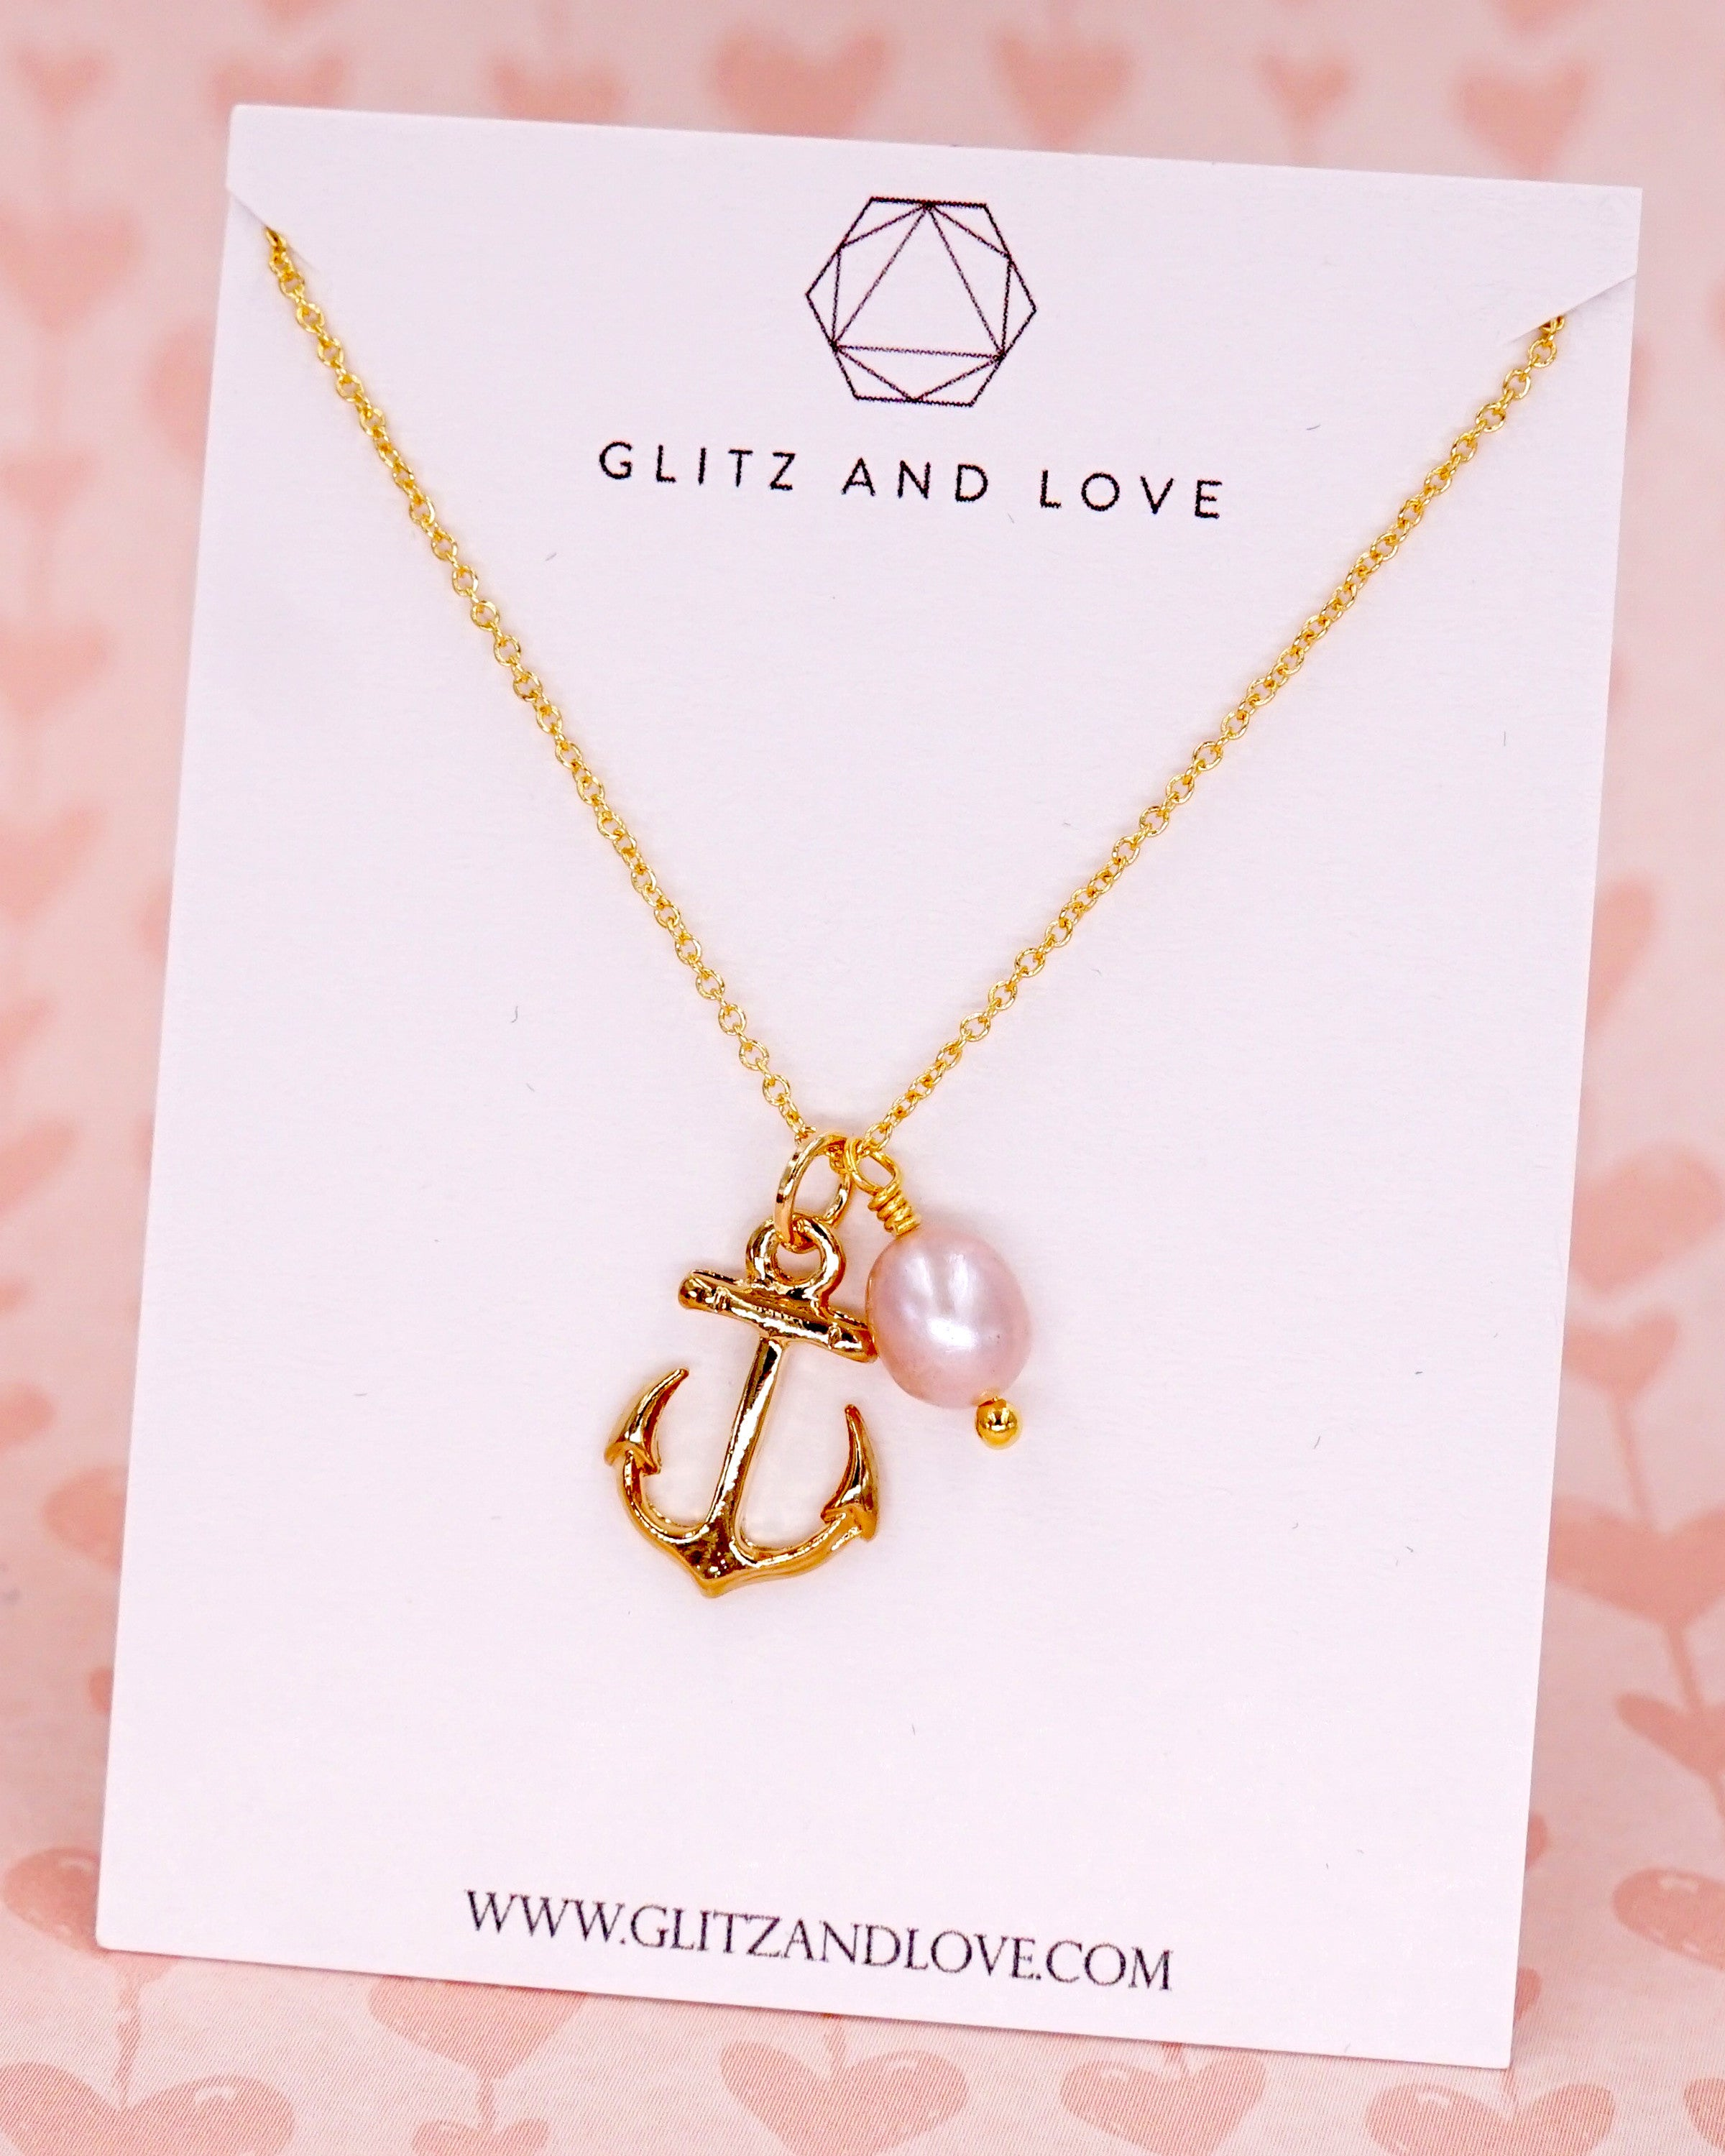 Nautical Jewelry Anchor Necklace Gold Anchor Charm Anchor Jewelry Beach Wedding Gift Dainty Necklace Anchor Necklace Pearl Necklace